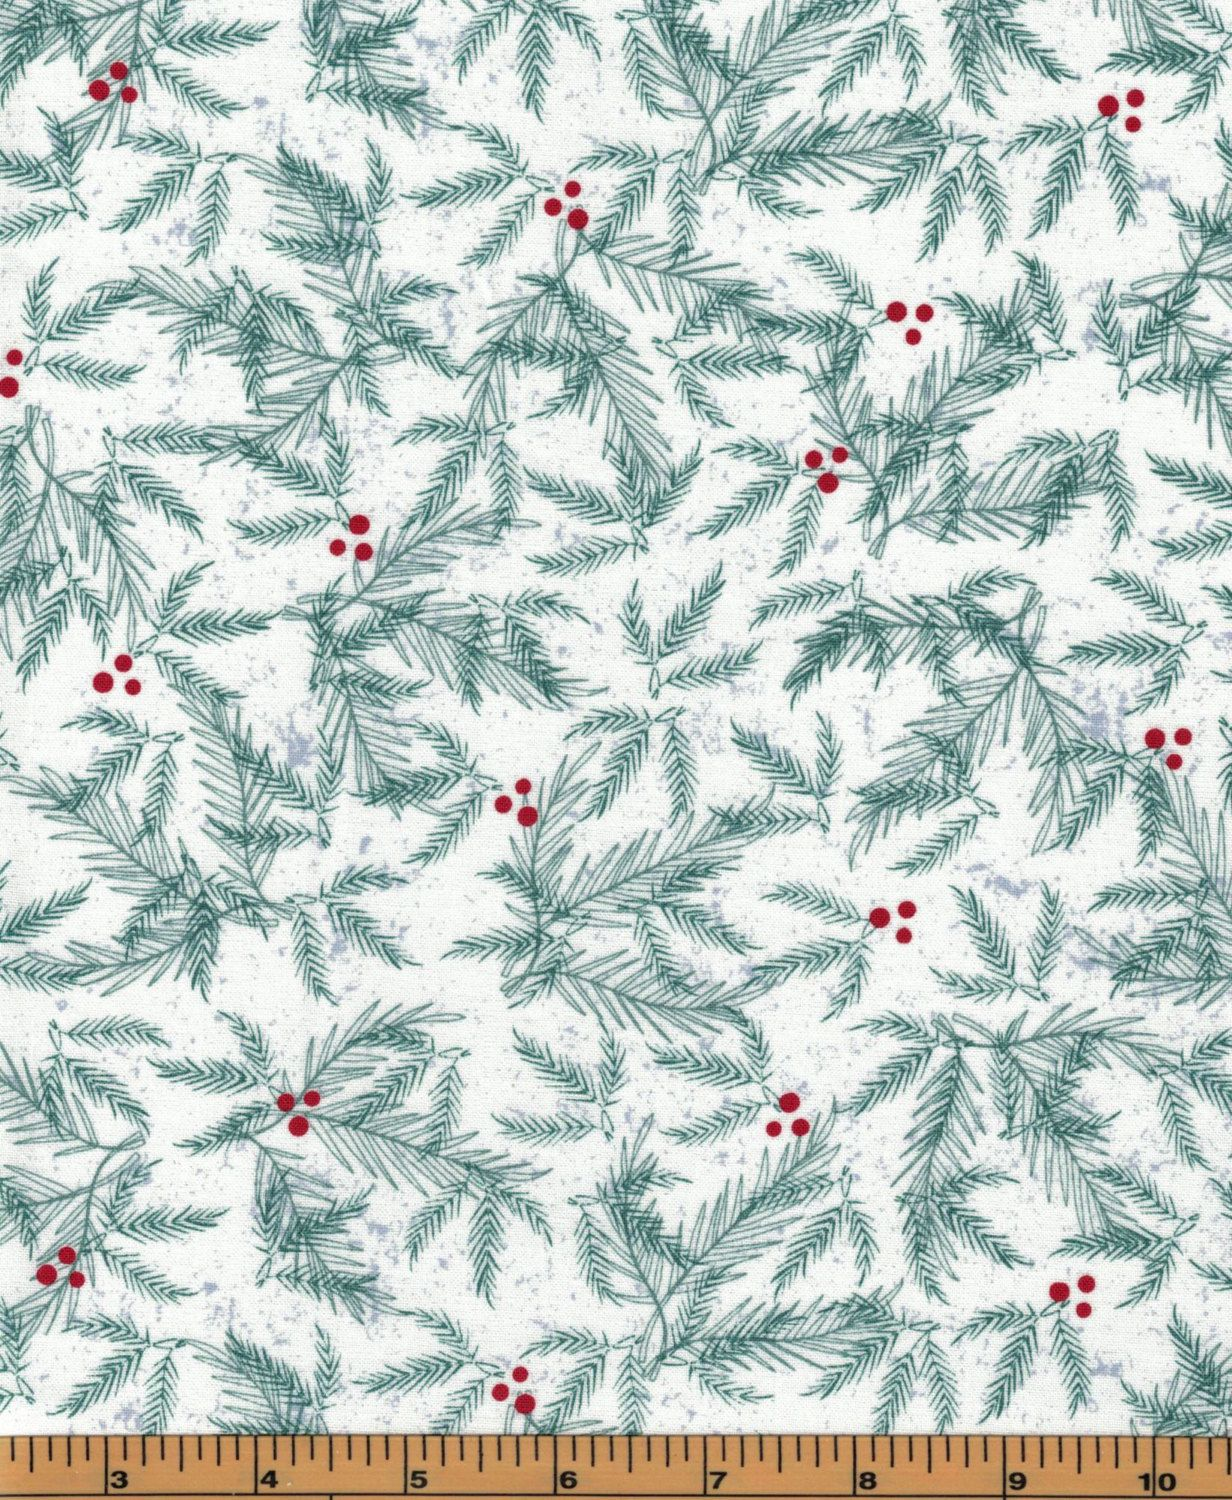 Branches on White Background - Holiday Traditions - Fabric by ... : quality quilting fabric - Adamdwight.com